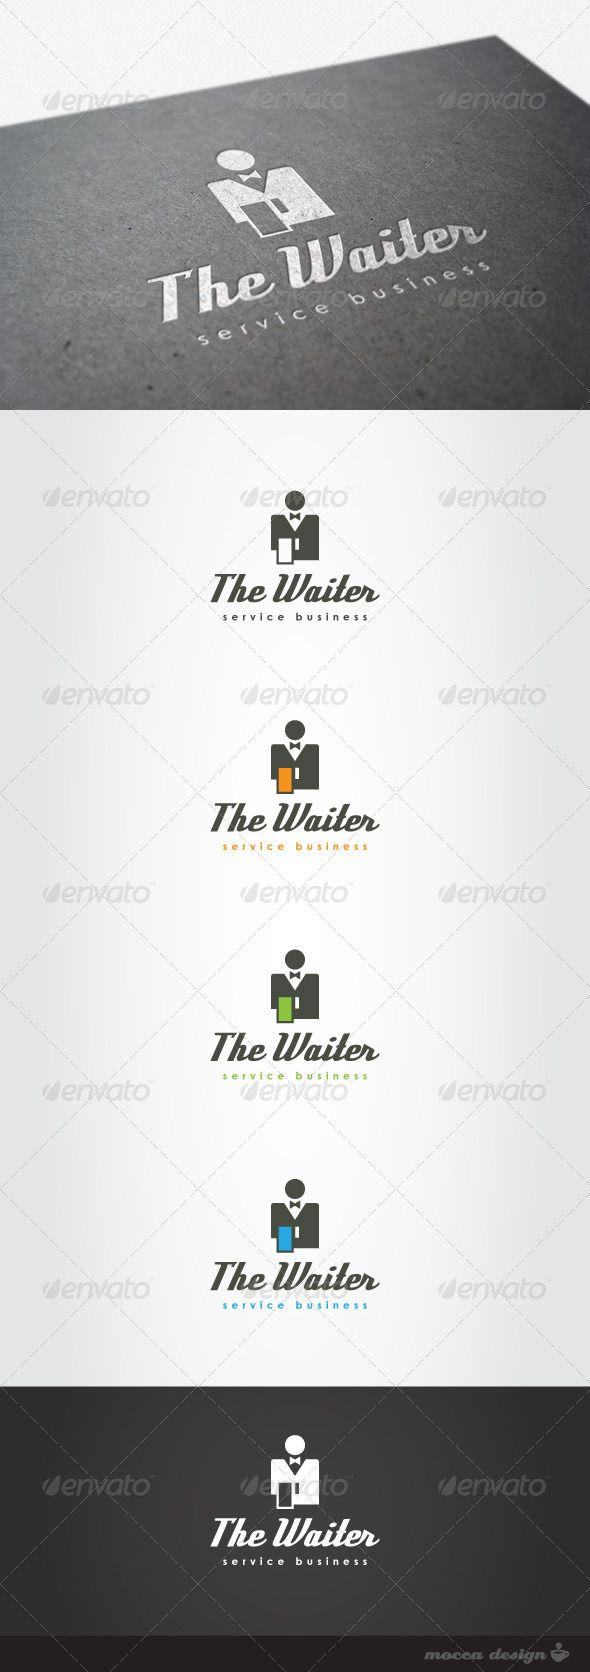 The Waiter Logo #GraphicRiver The Waiter is a clean, professional and elegant logo suitable for a high quality